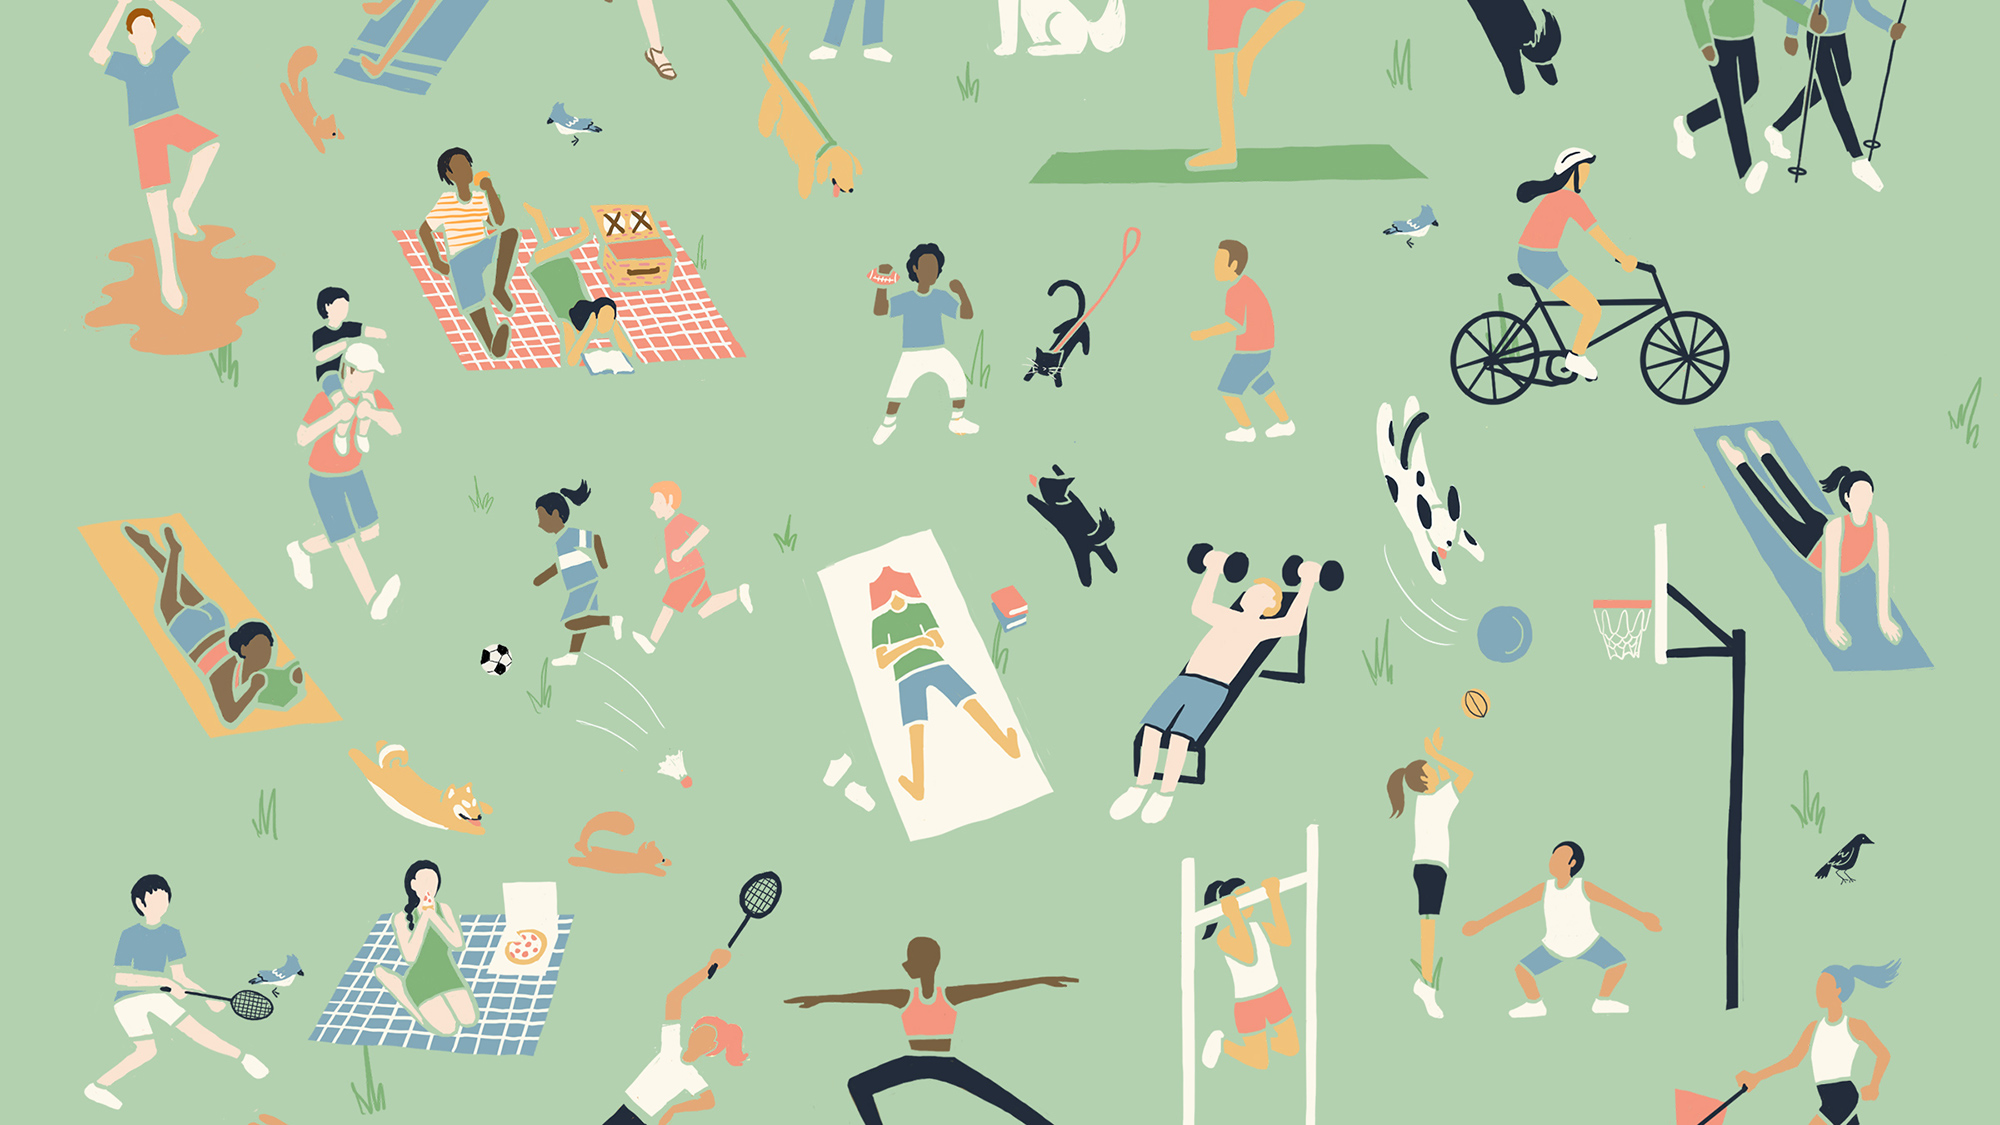 An illustration of people playing, exercising, and biking in a park.